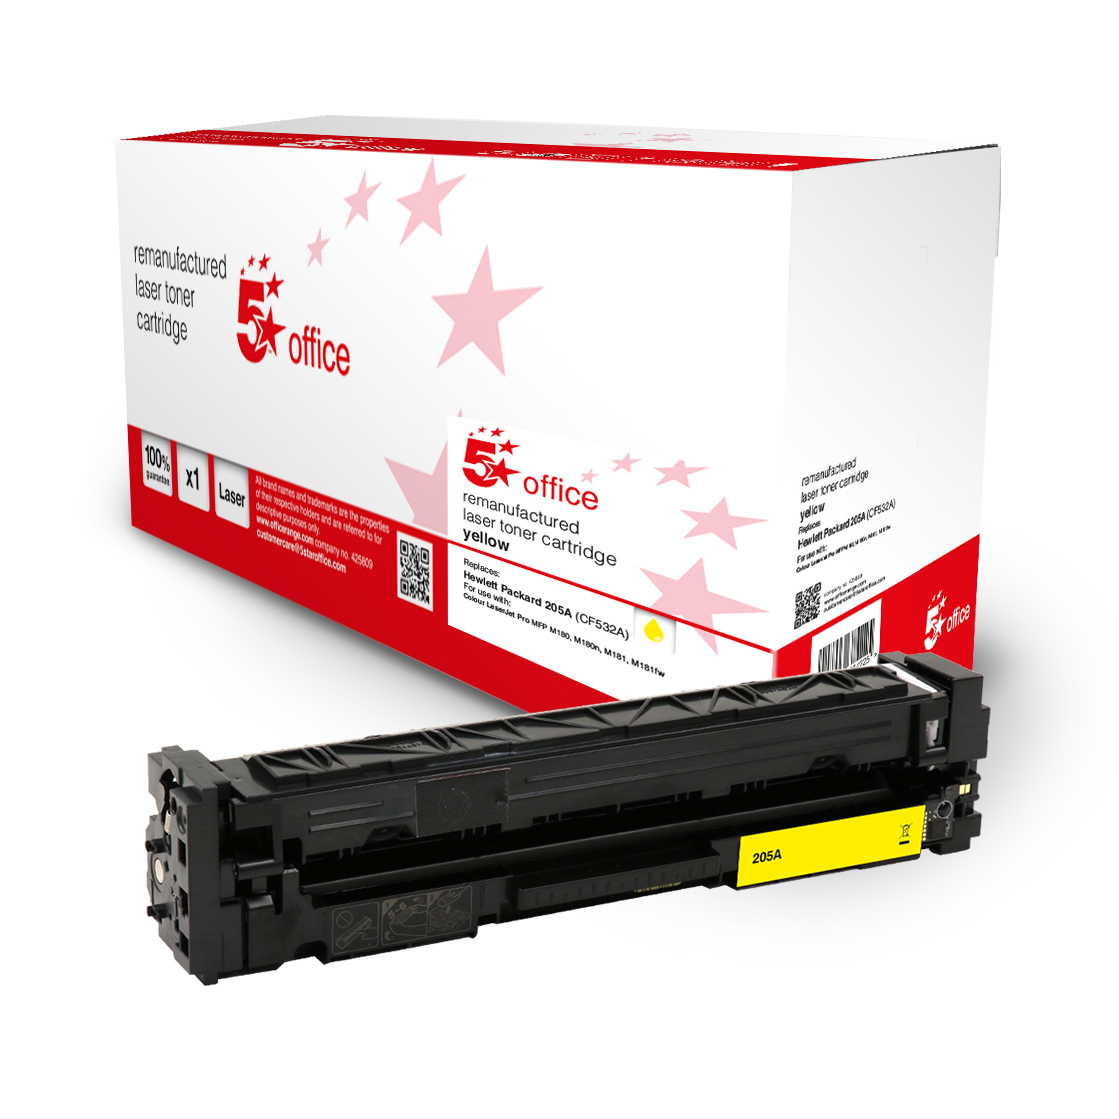 5 Star Office Remanufactured Toner Cartridge Page Life Yellow 900pp [HP 205A CF532A Alternative]